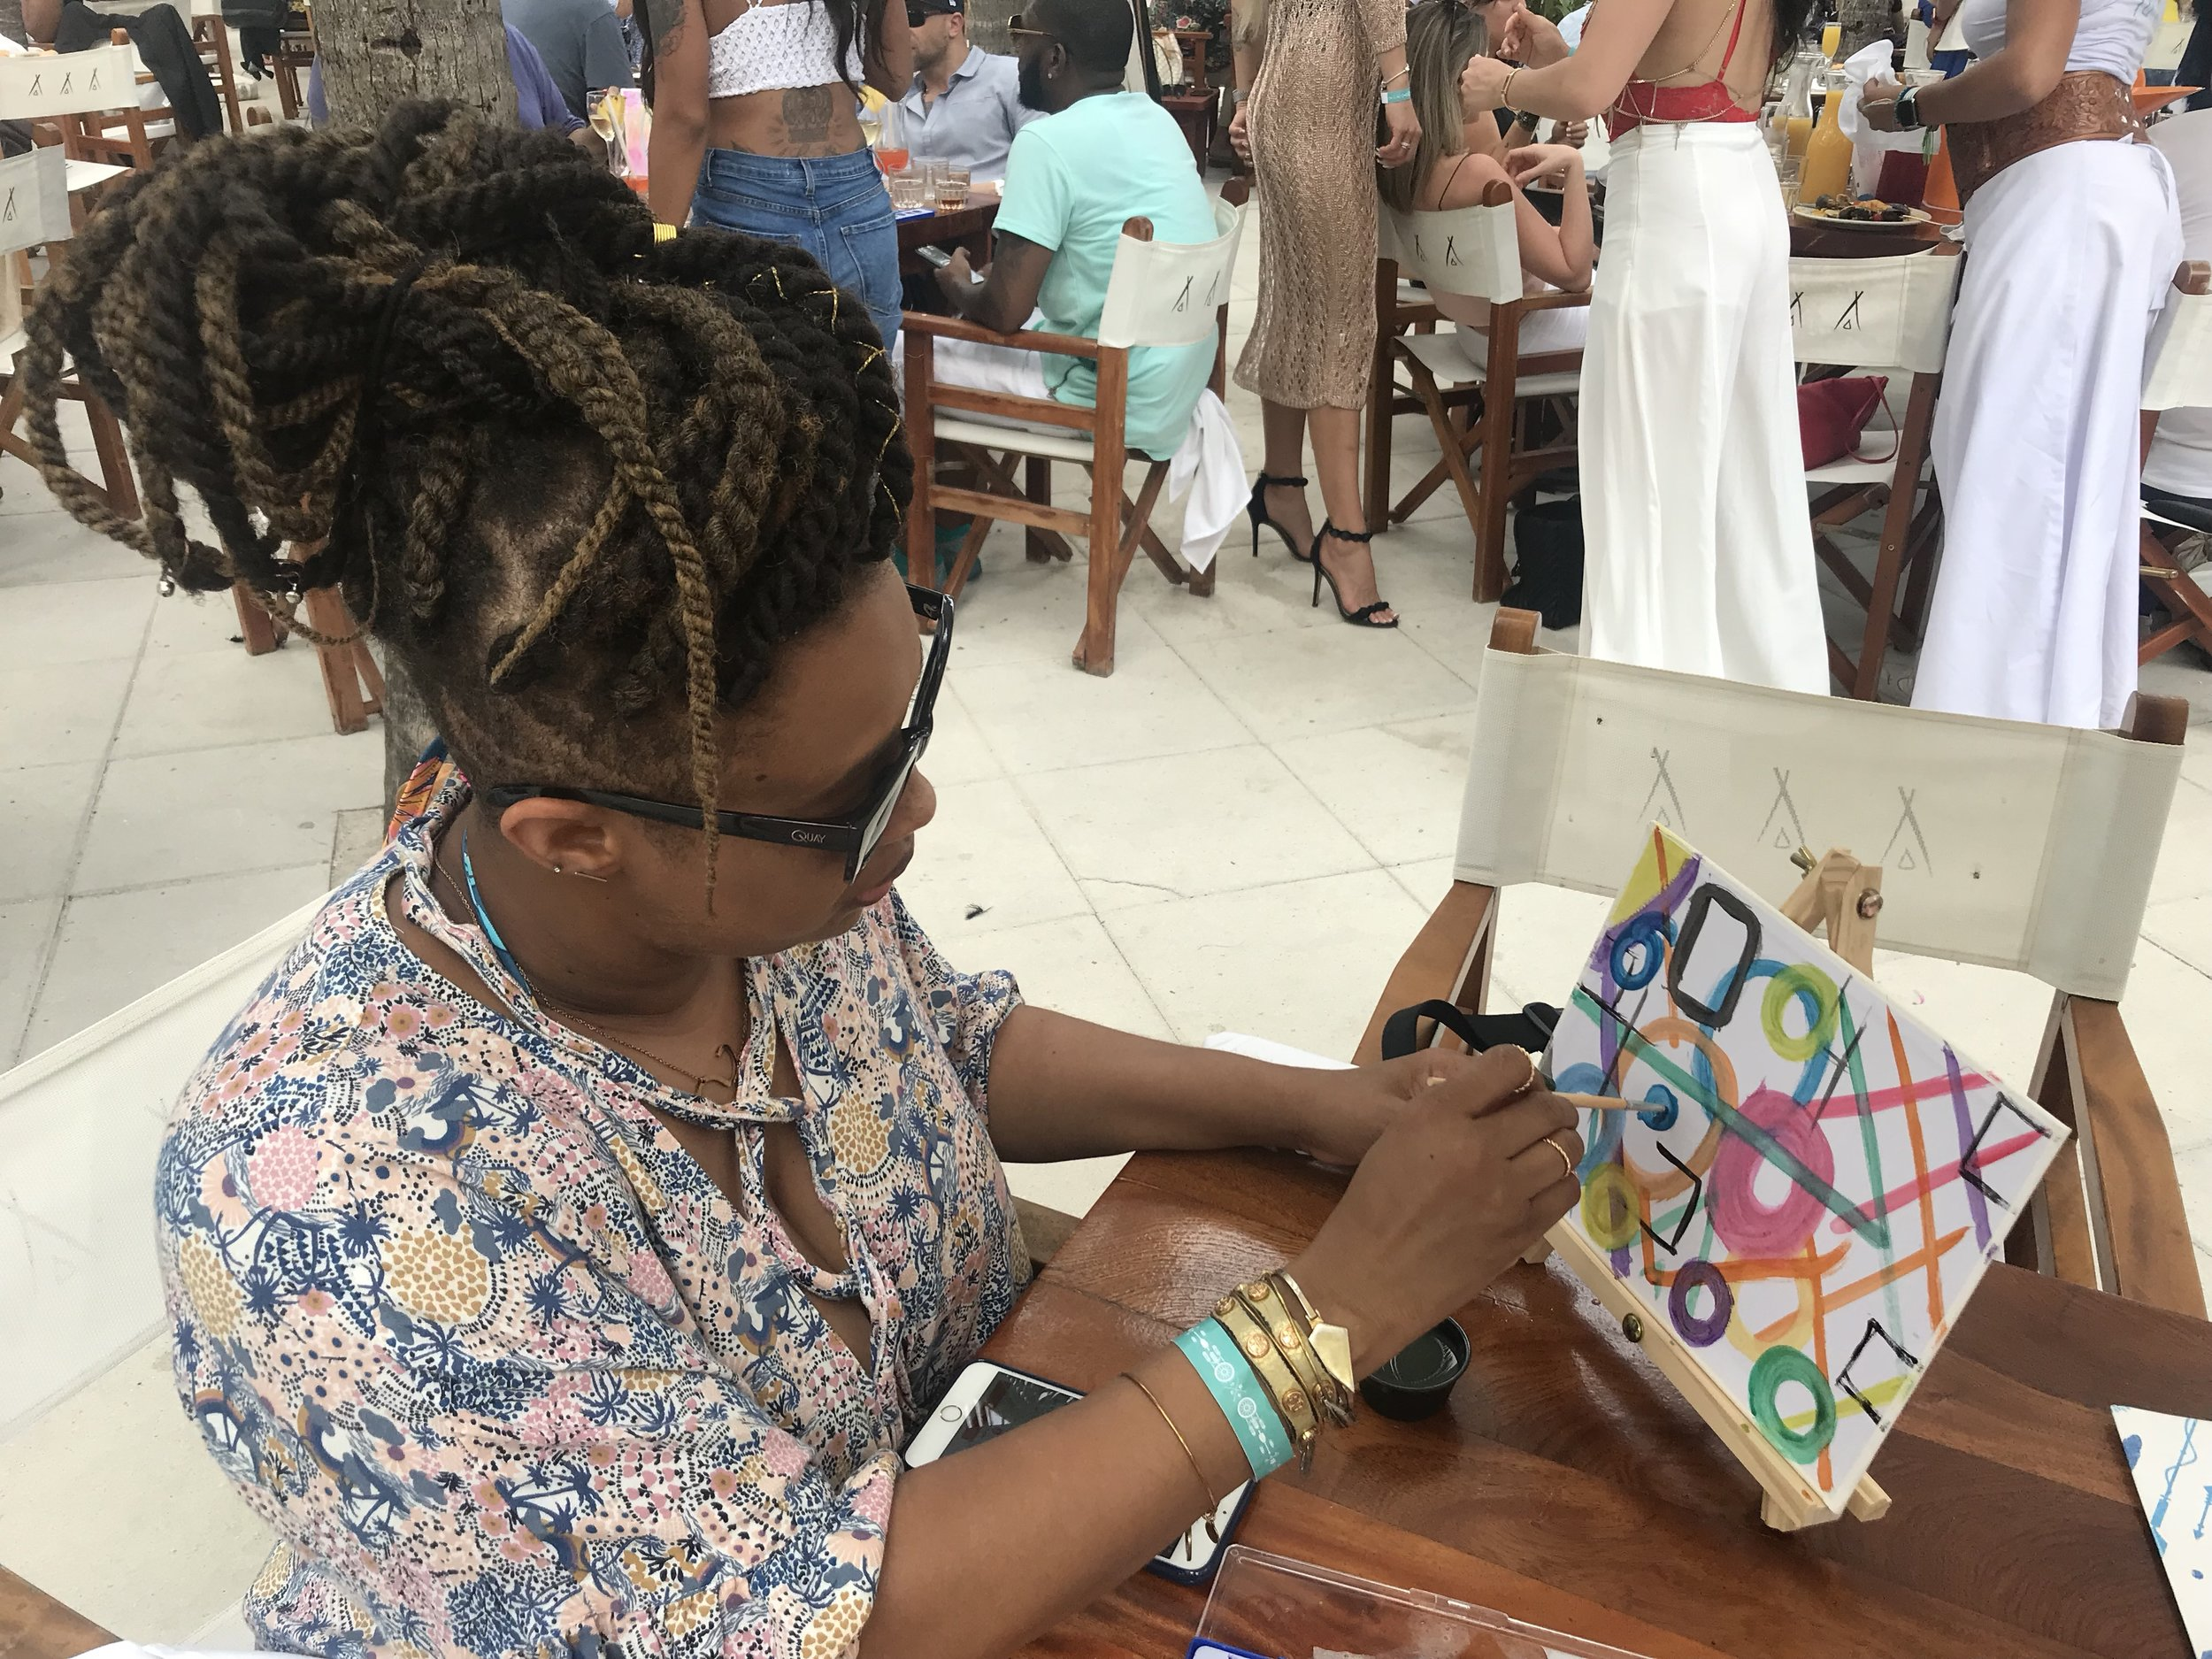 Our visit was doing Art Basel. Nikki Beach incorpoates Art and creativity making it an Art themed Brunch.